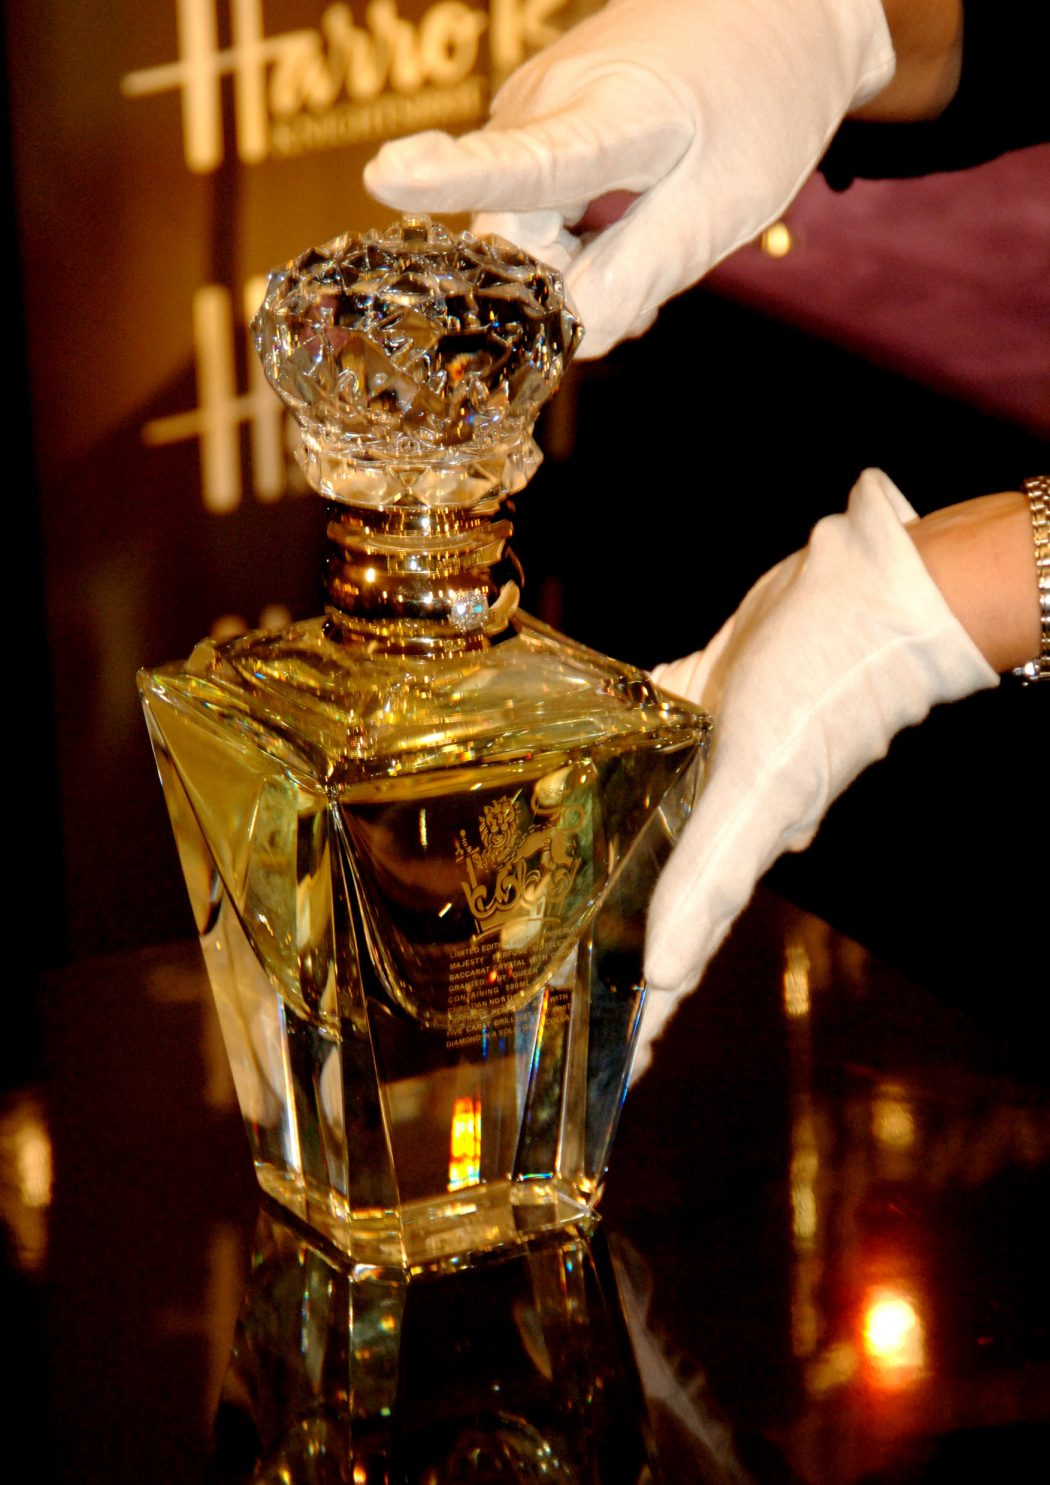 clive-christian-no-1-perfume-imperial-majesty-edition-on-display-at-harrods-department-store Outdoor Corporate Events and The Importance of Having Canopy Tents